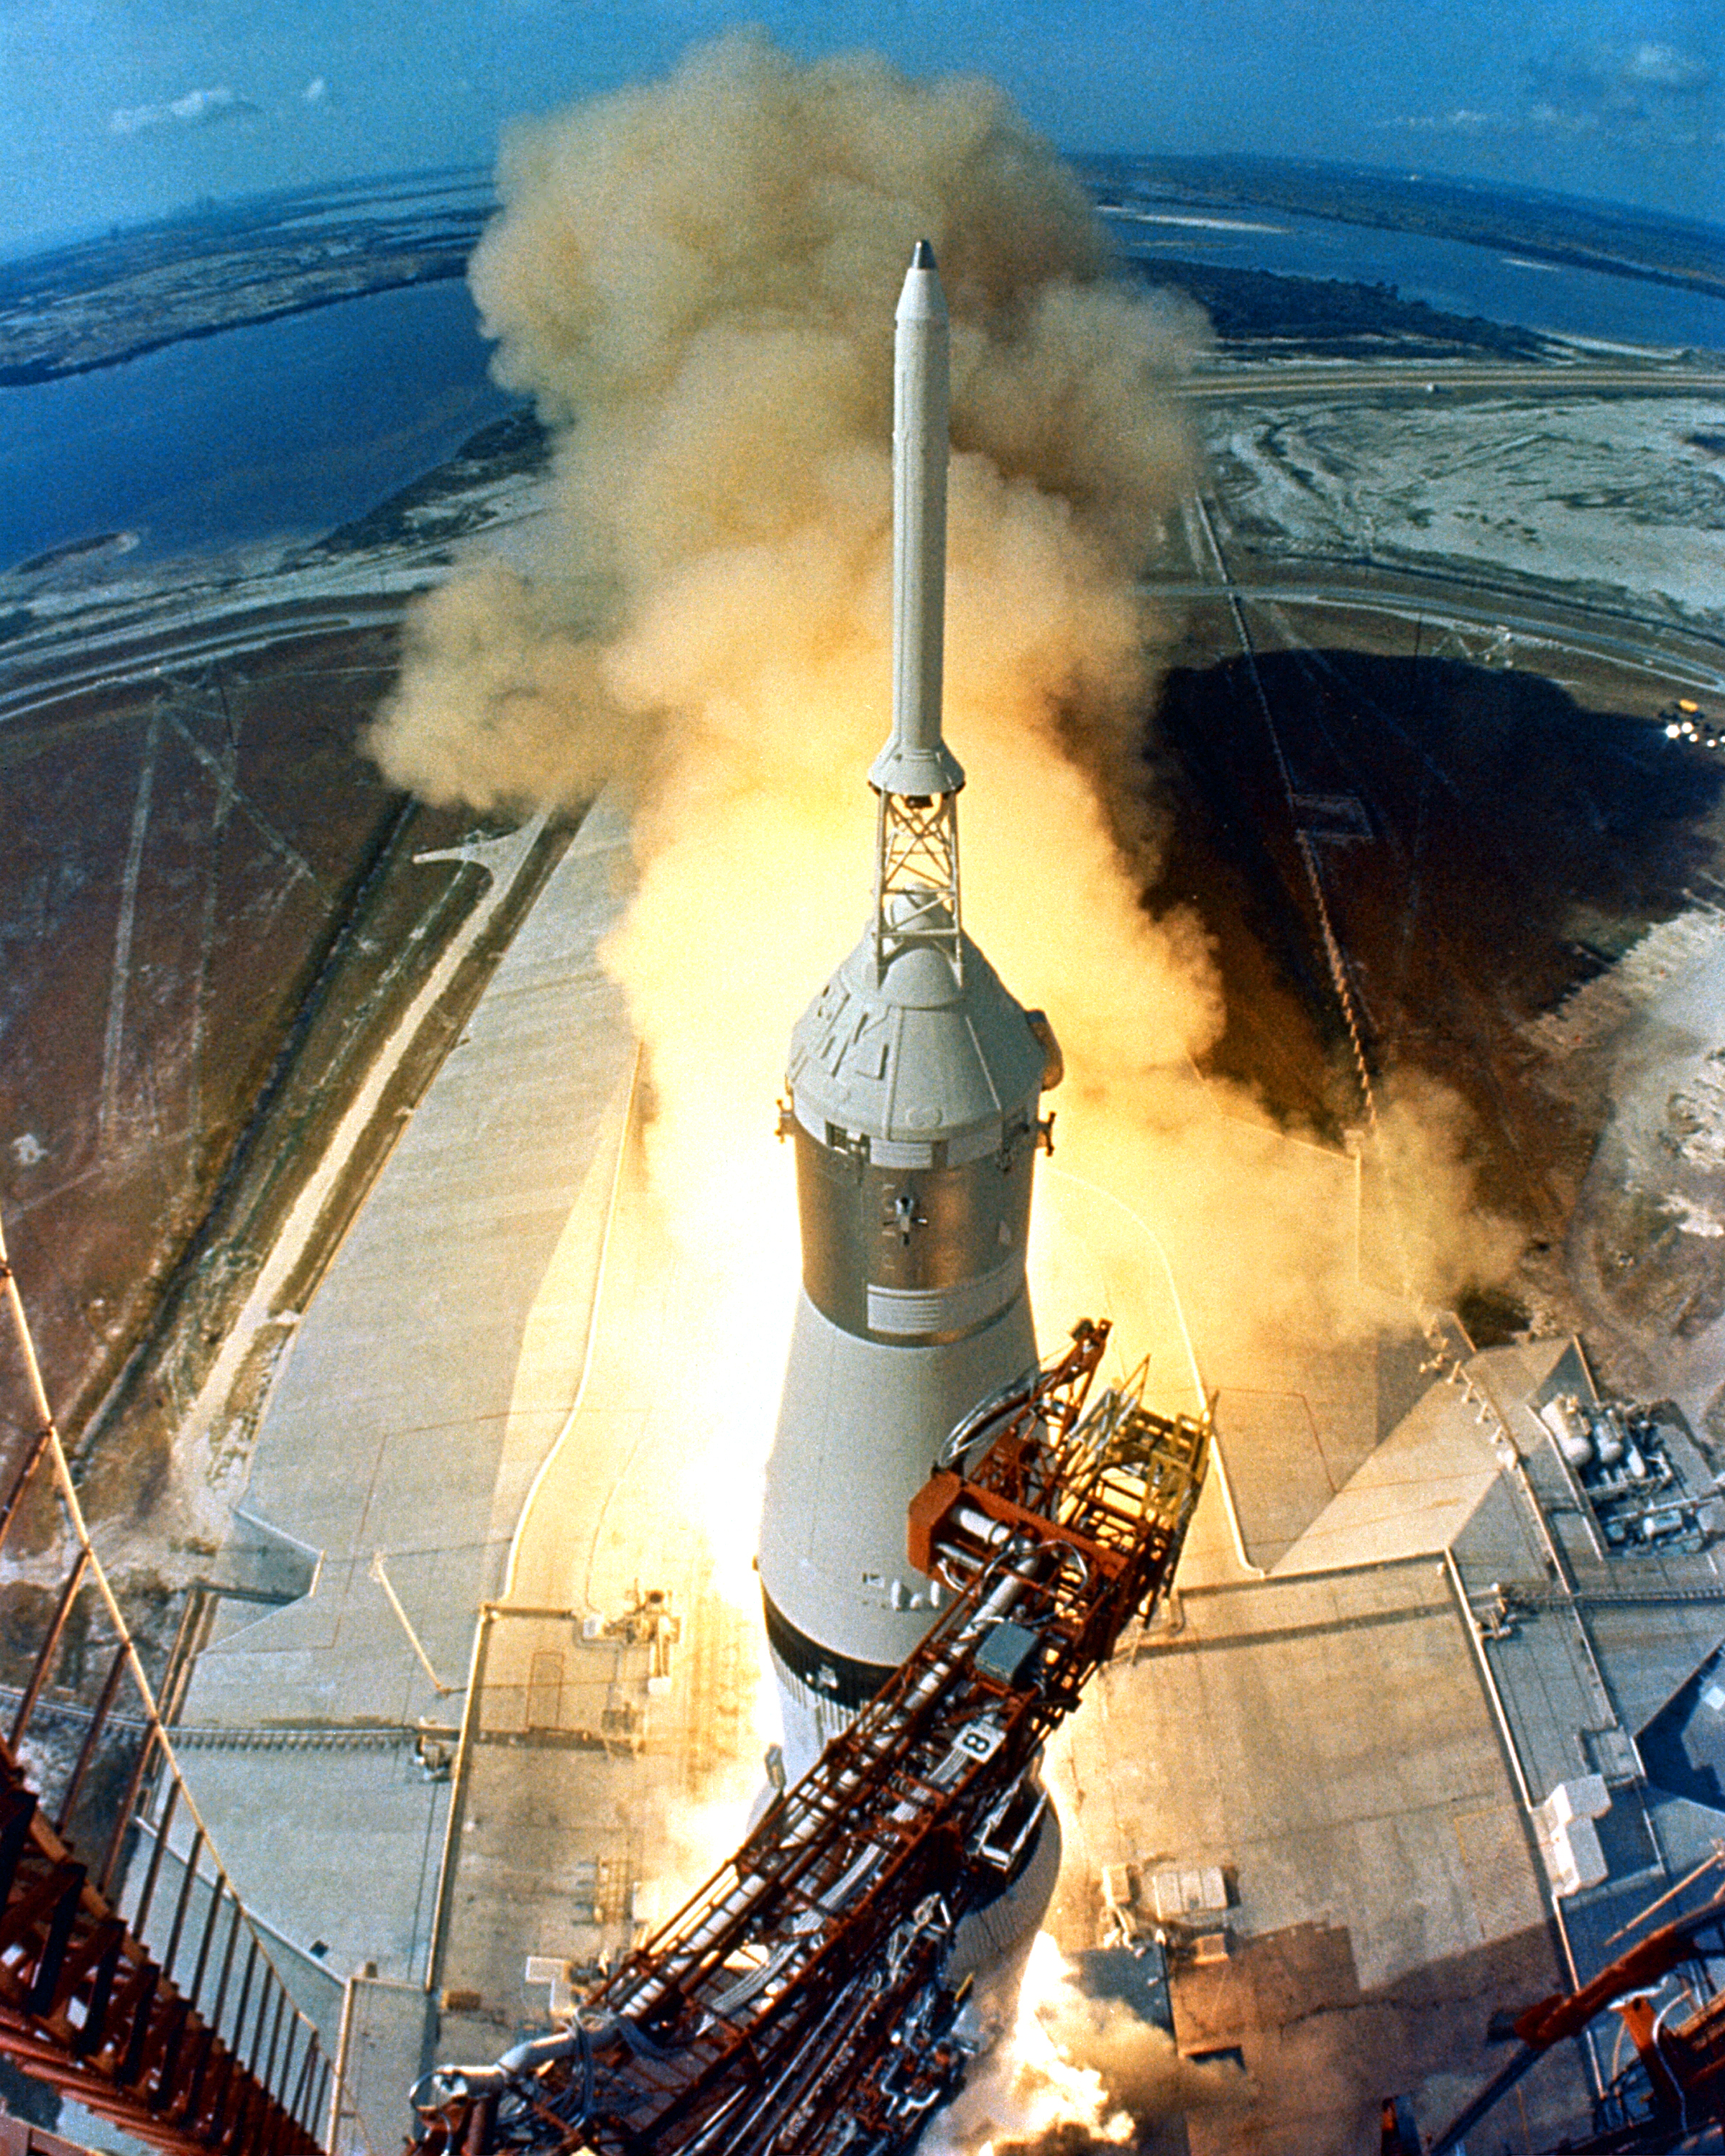 Apollo 11 prepares to launch in Cape Canaveral, FL.